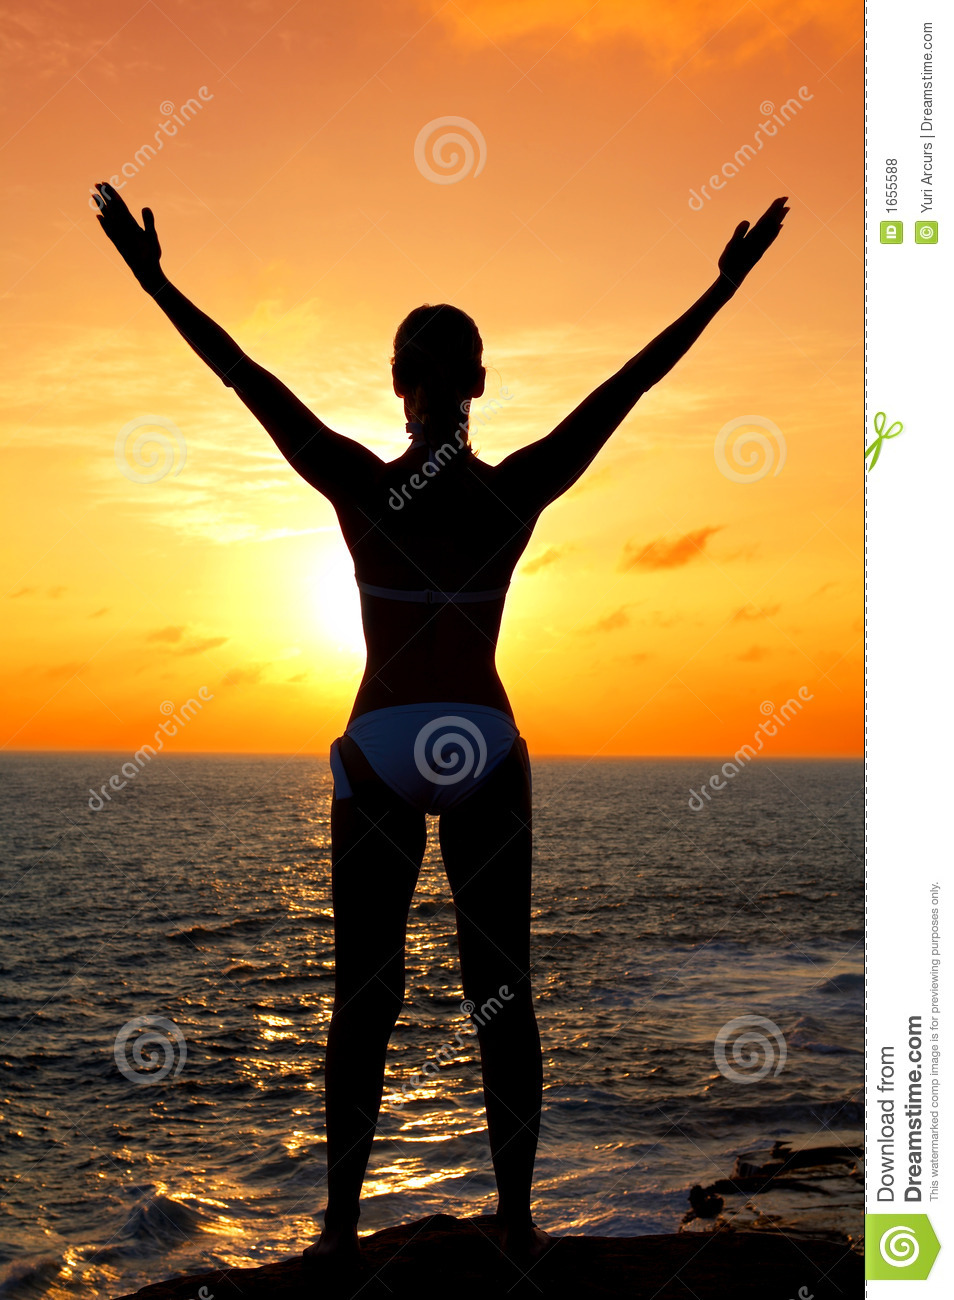 Royalty Free Stock Photos: Silhouette of woman at sunset ...